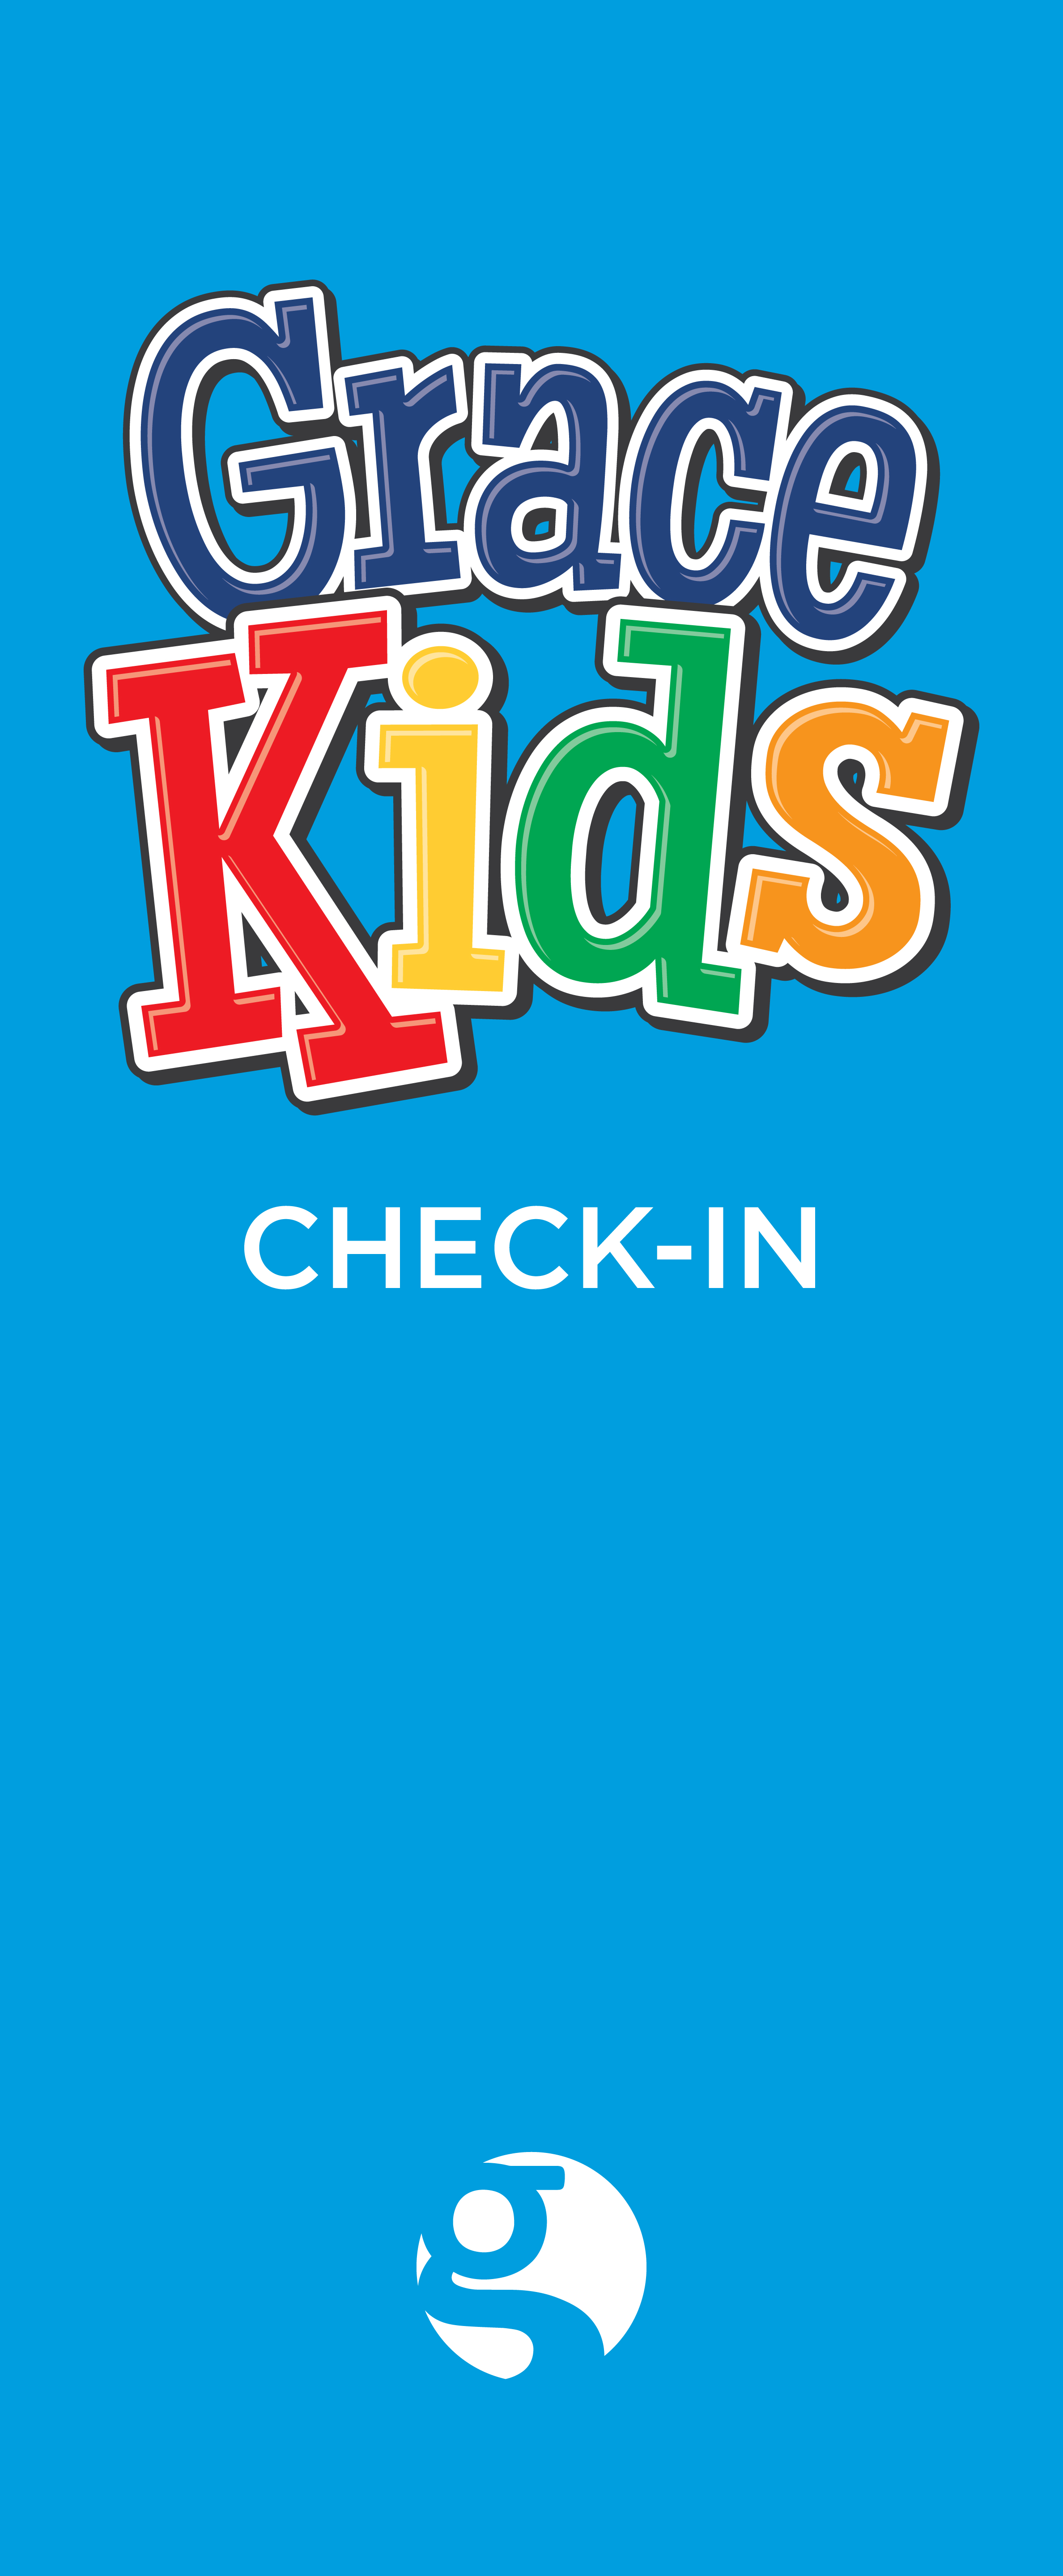 Kids-Check-in-retractable-banners.jpg